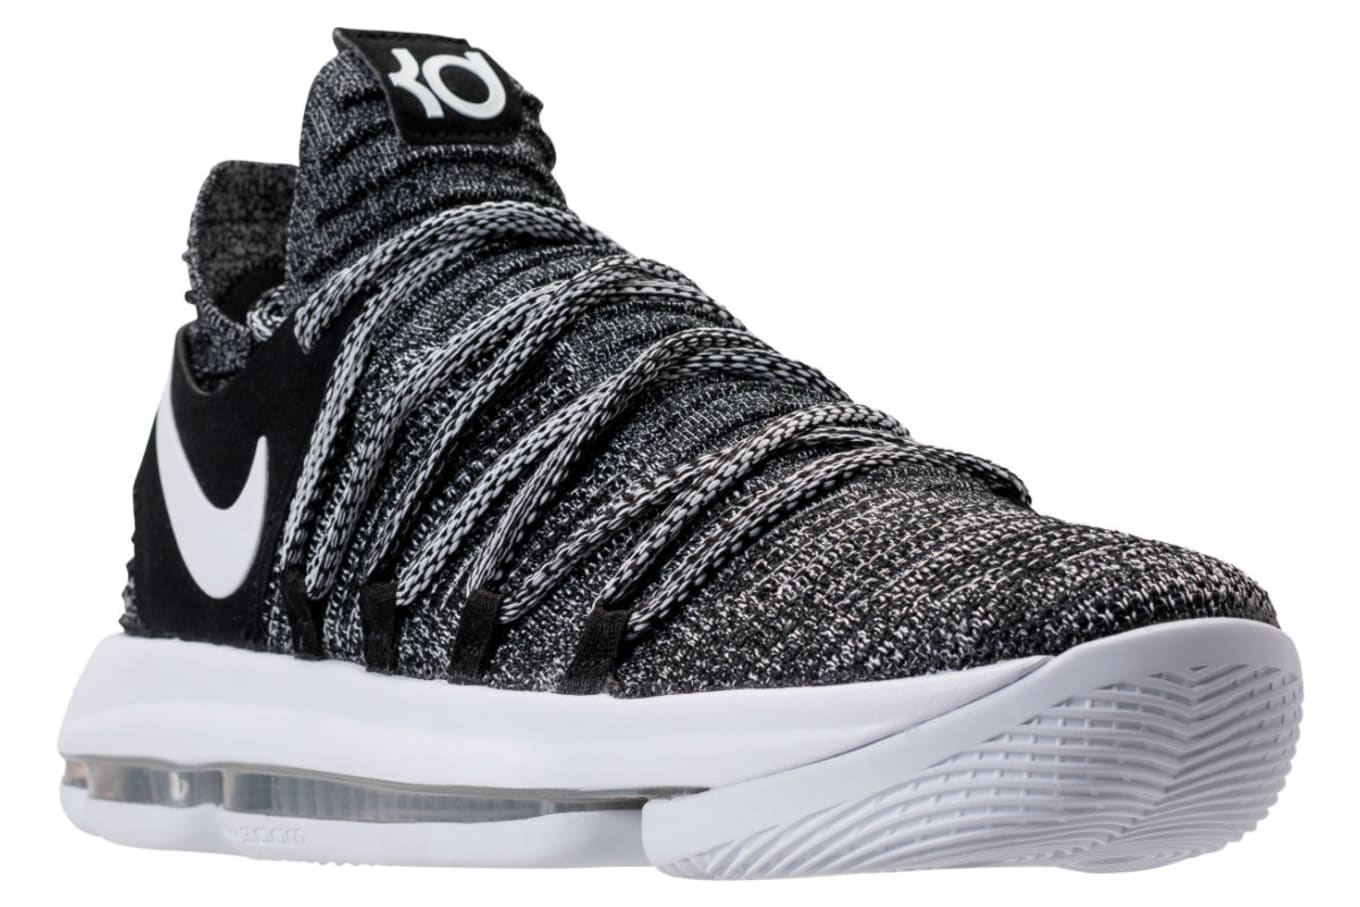 reputable site 42866 b5376 Nike KD 10 Oreo Release Date 897815-001 | Sole Collector